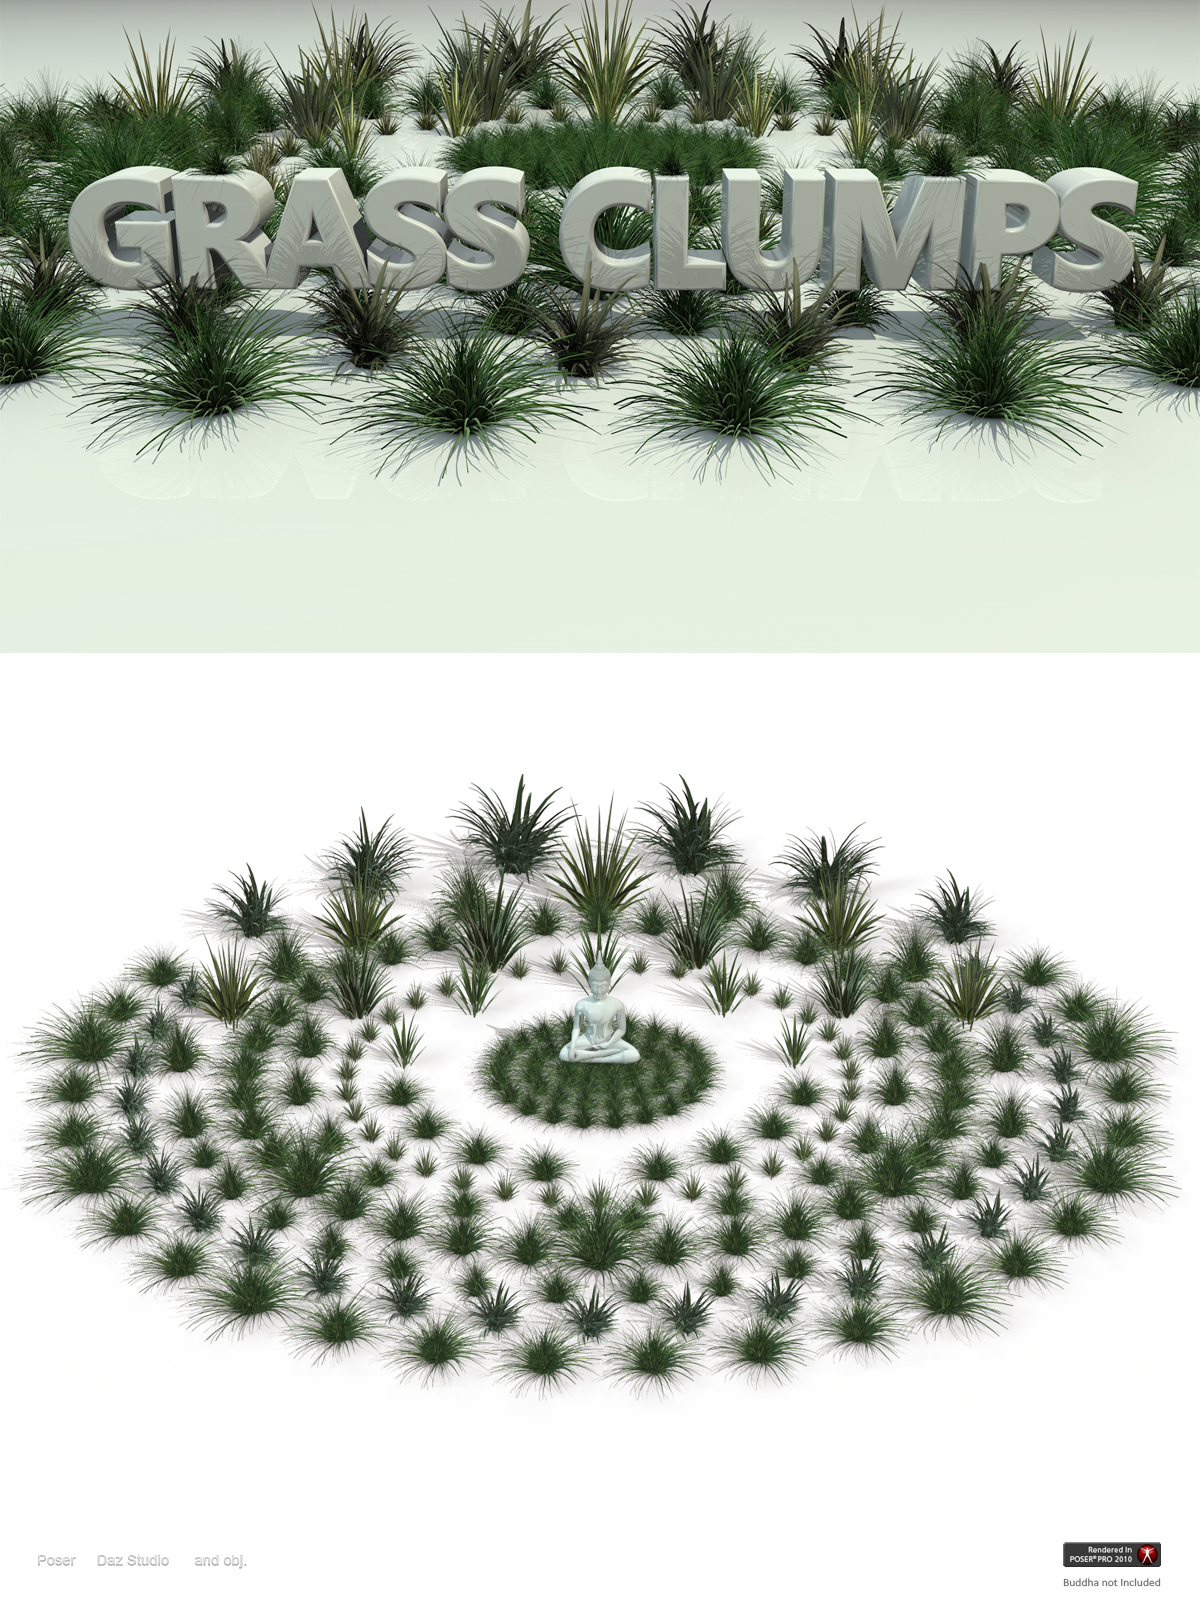 Grass Clumps